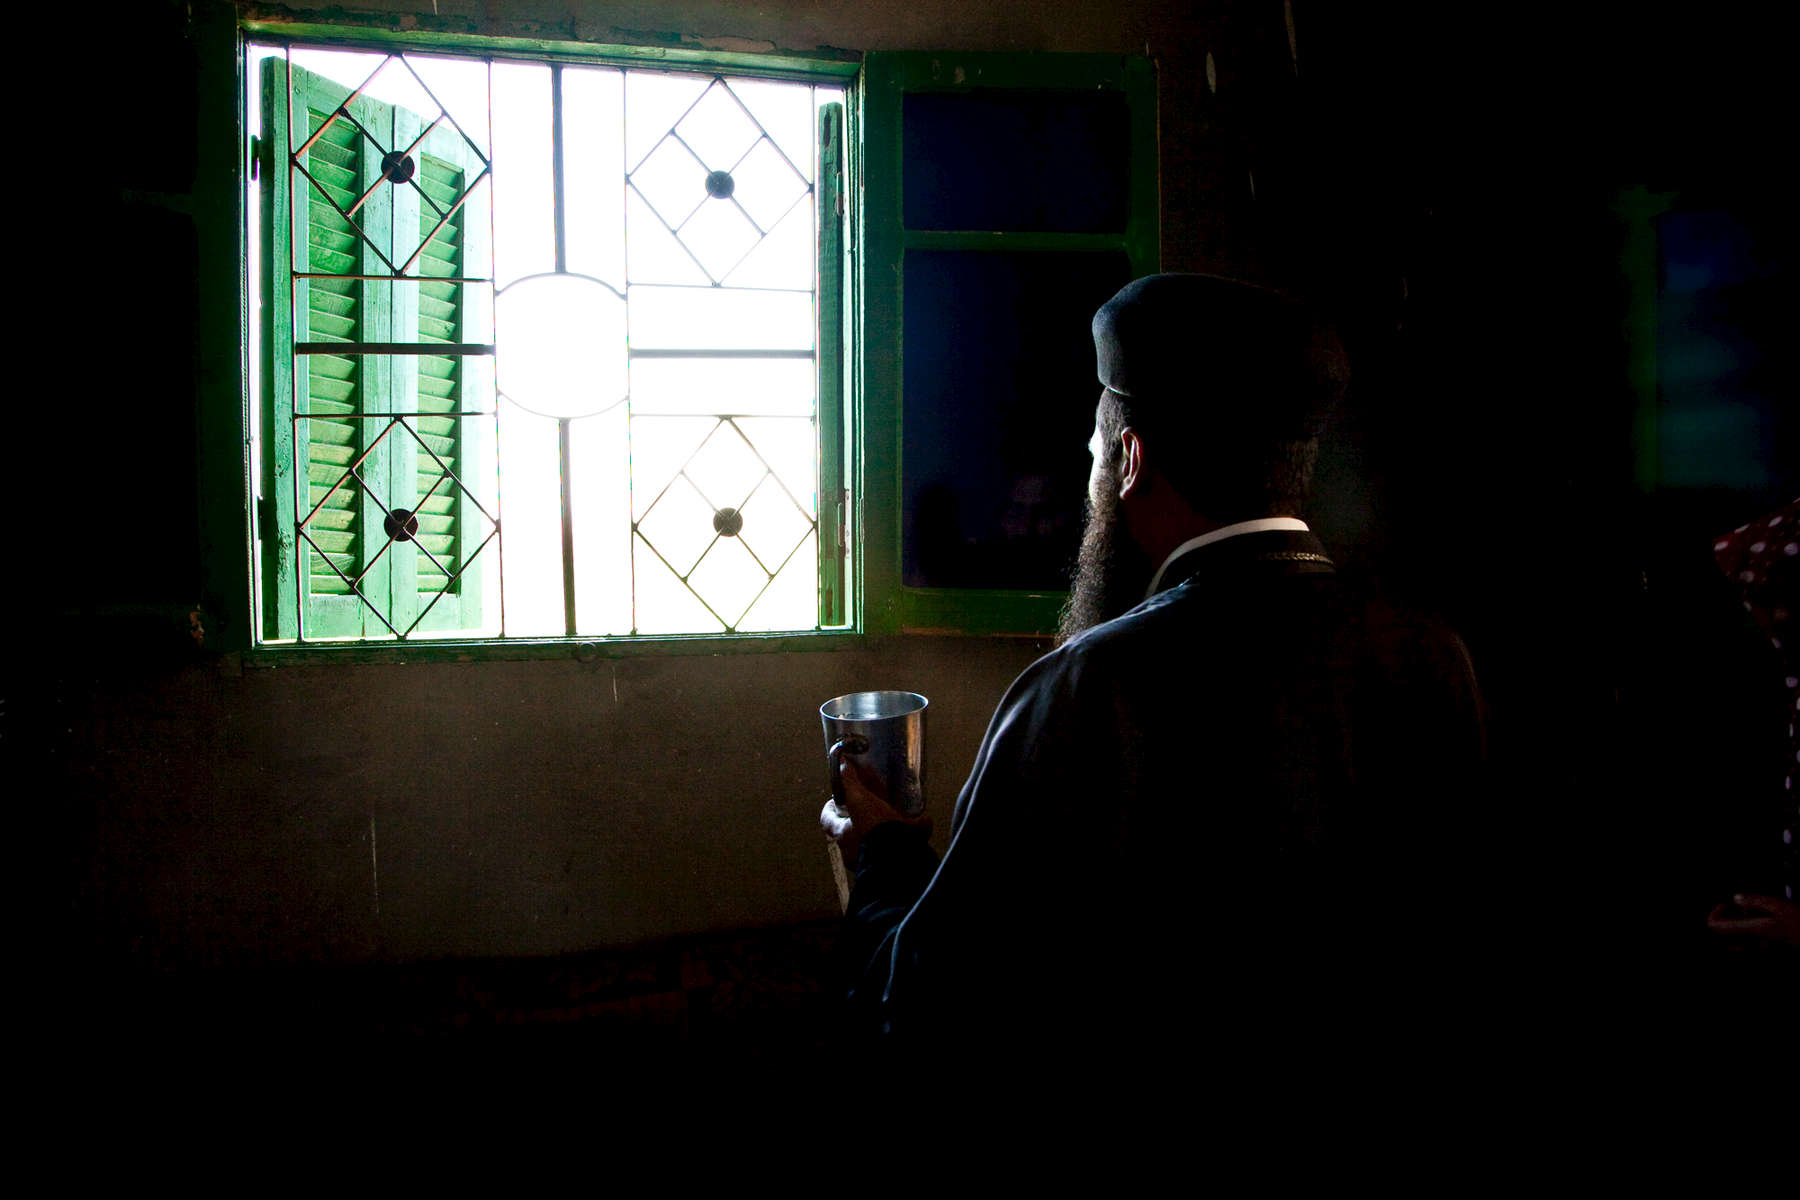 A Coptic priest sanctifies water to be used to bless a home and its family. El-Diabiyya.